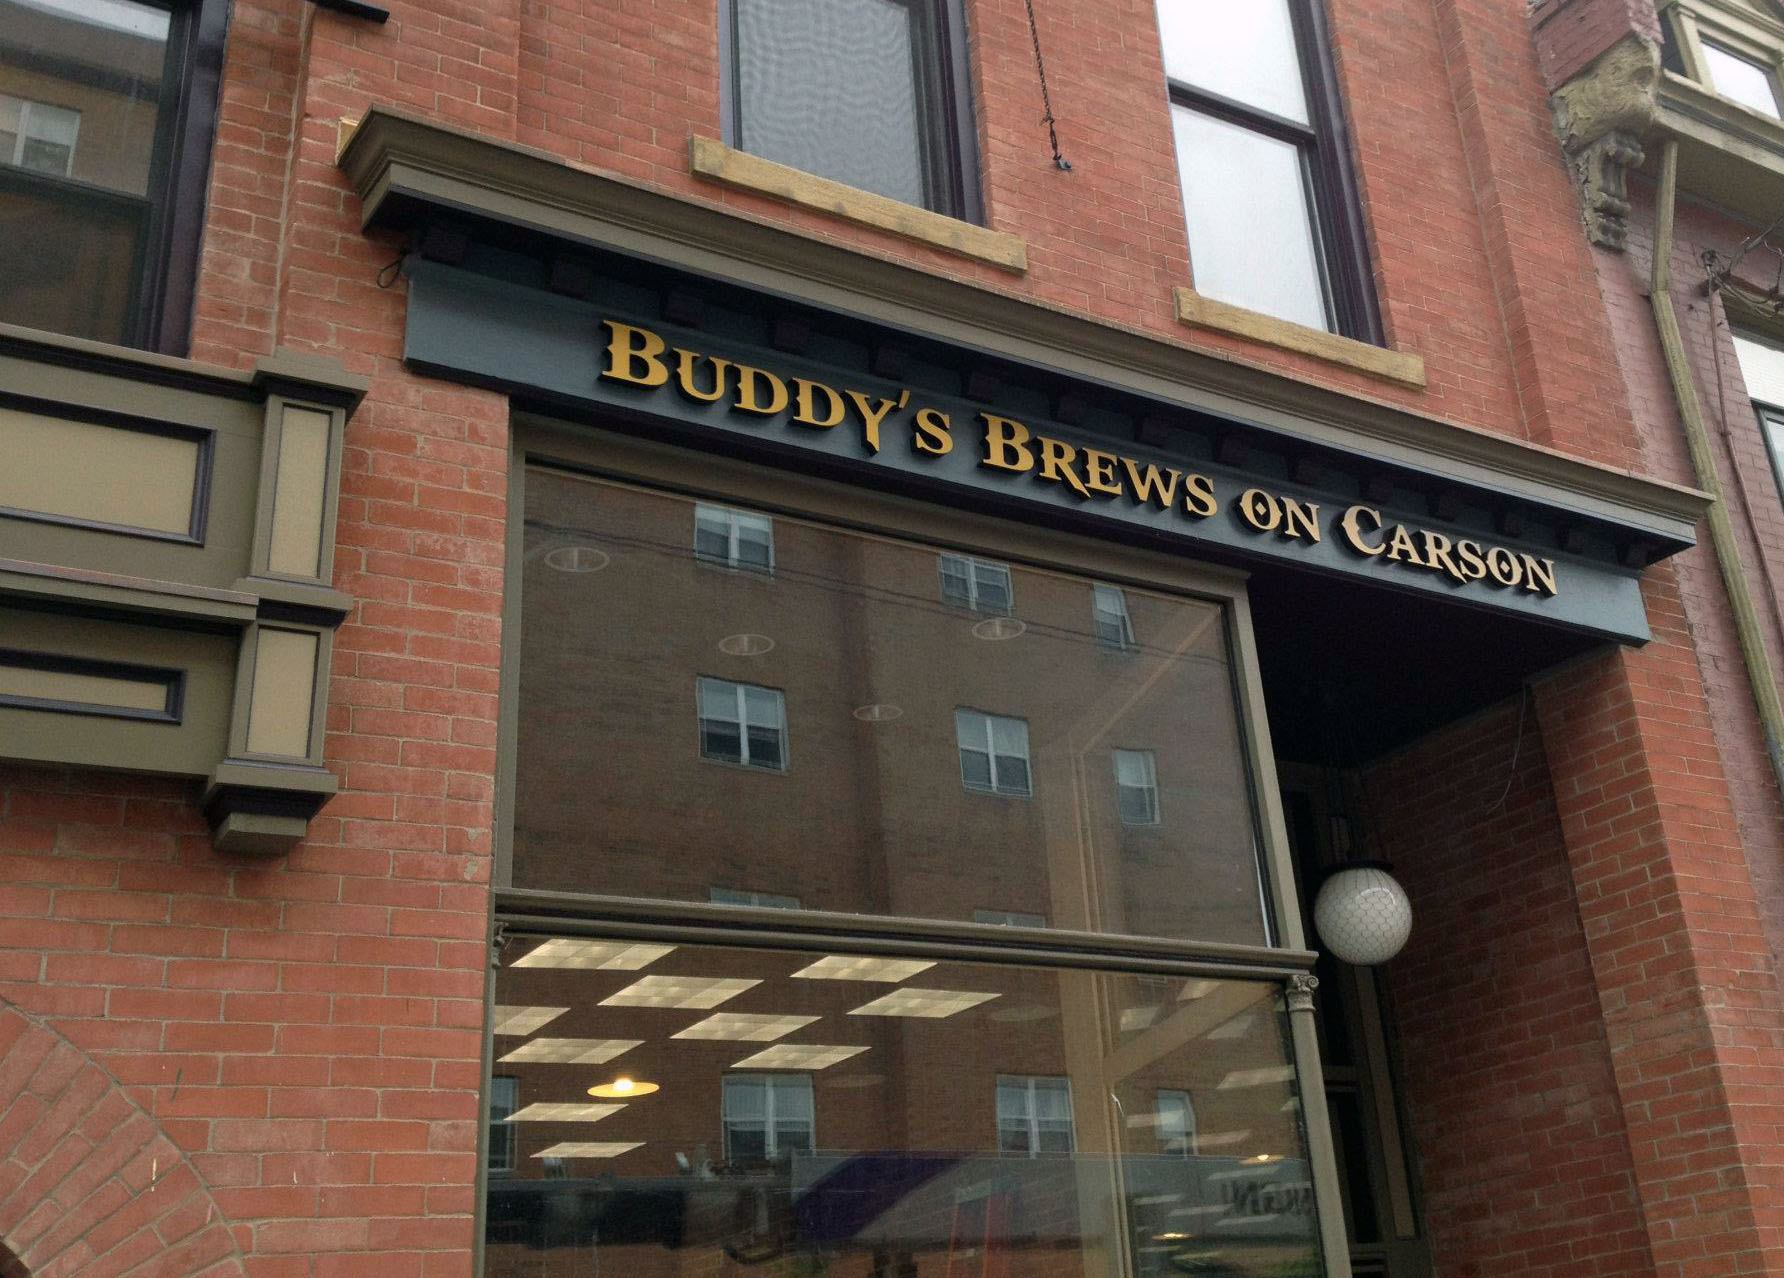 Buddy's Brews on Carson